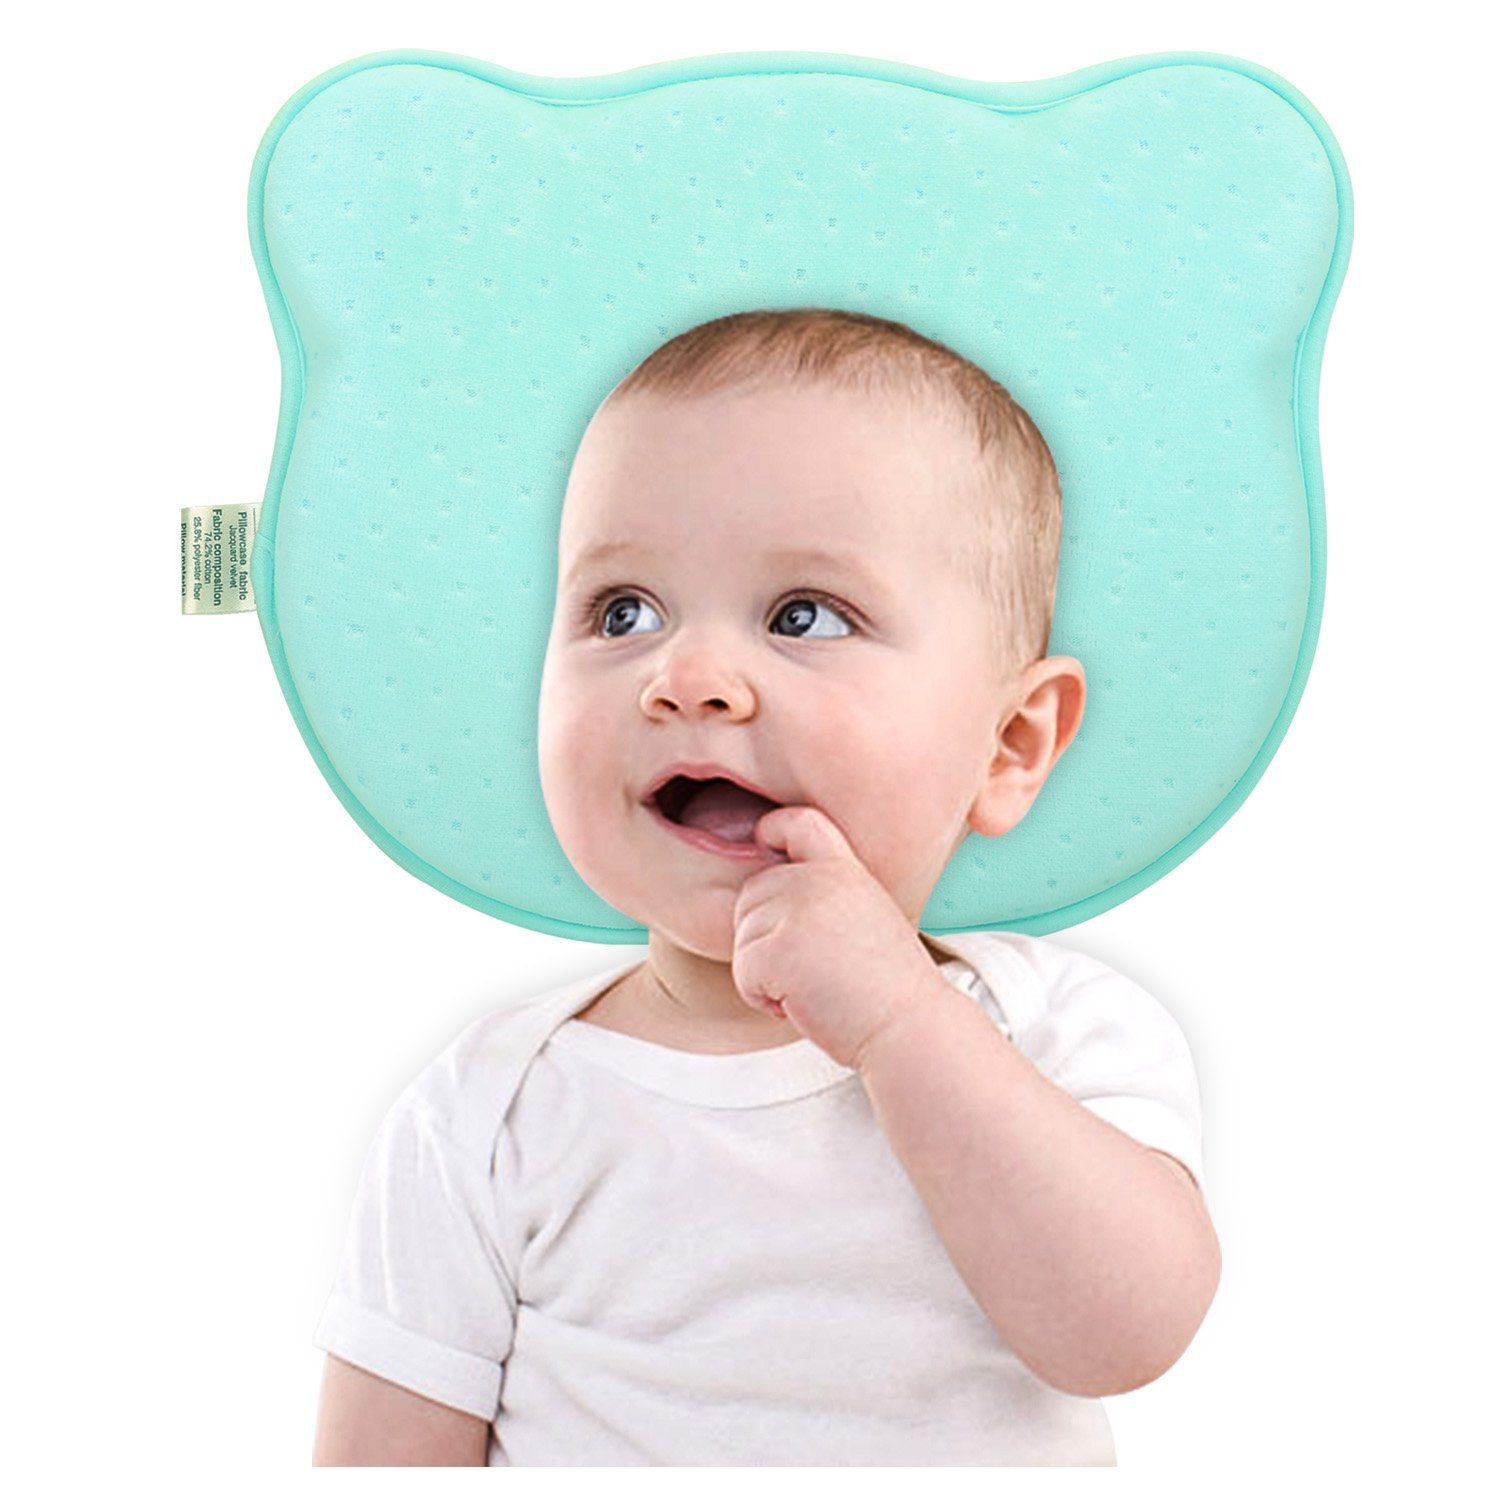 Zooawa Baby Pillow, Memory Foam Protective Head Shaping Pillow and Soft Velvet Pillowcase for Baby Newborn Infant Toddler Kids, Bear Blue